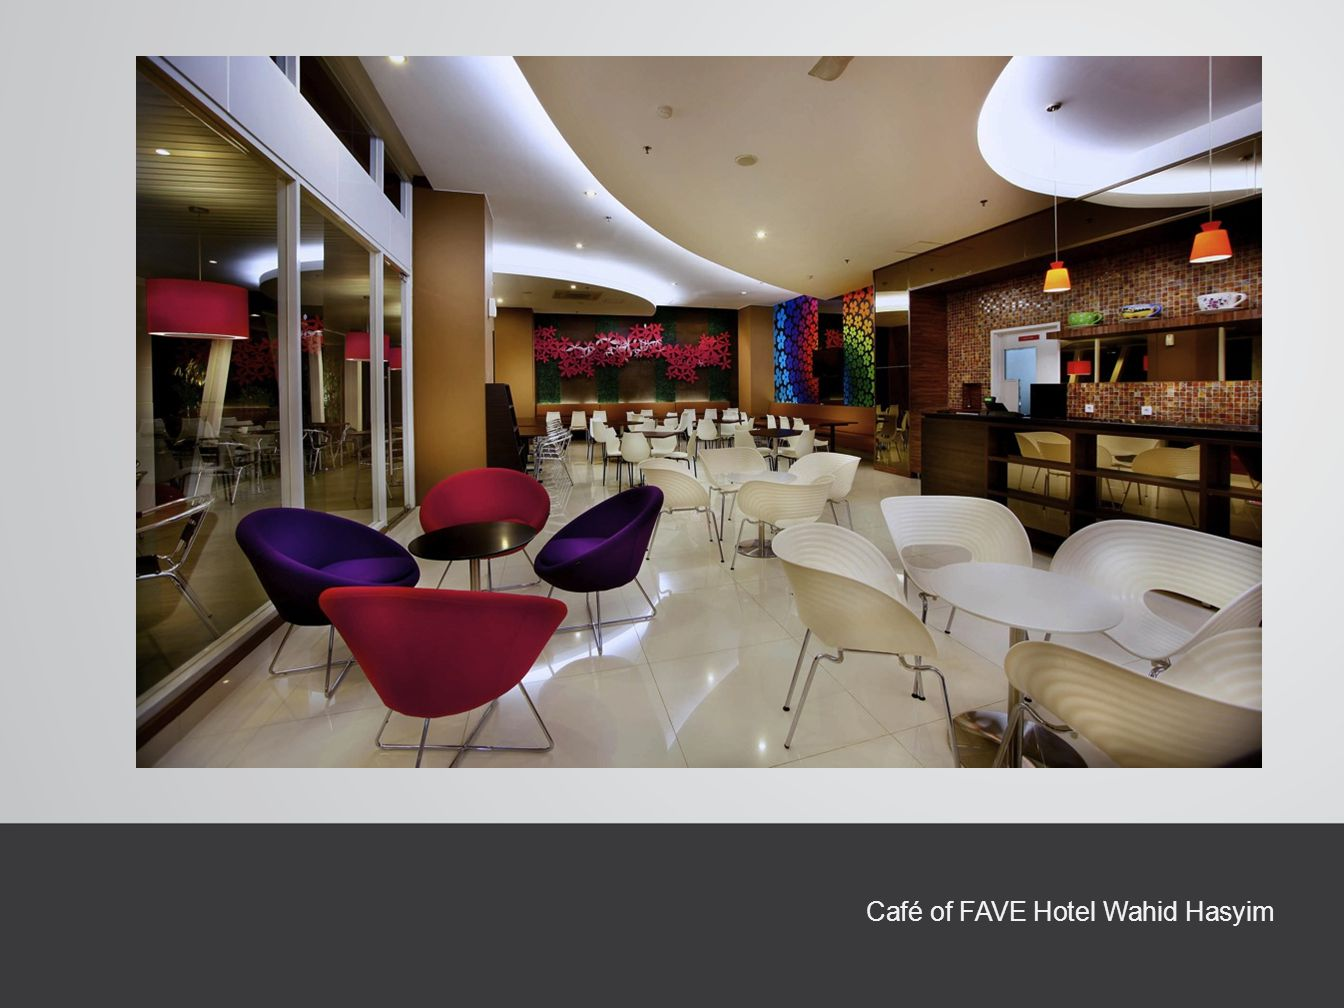 Café of FAVE Hotel Wahid Hasyim